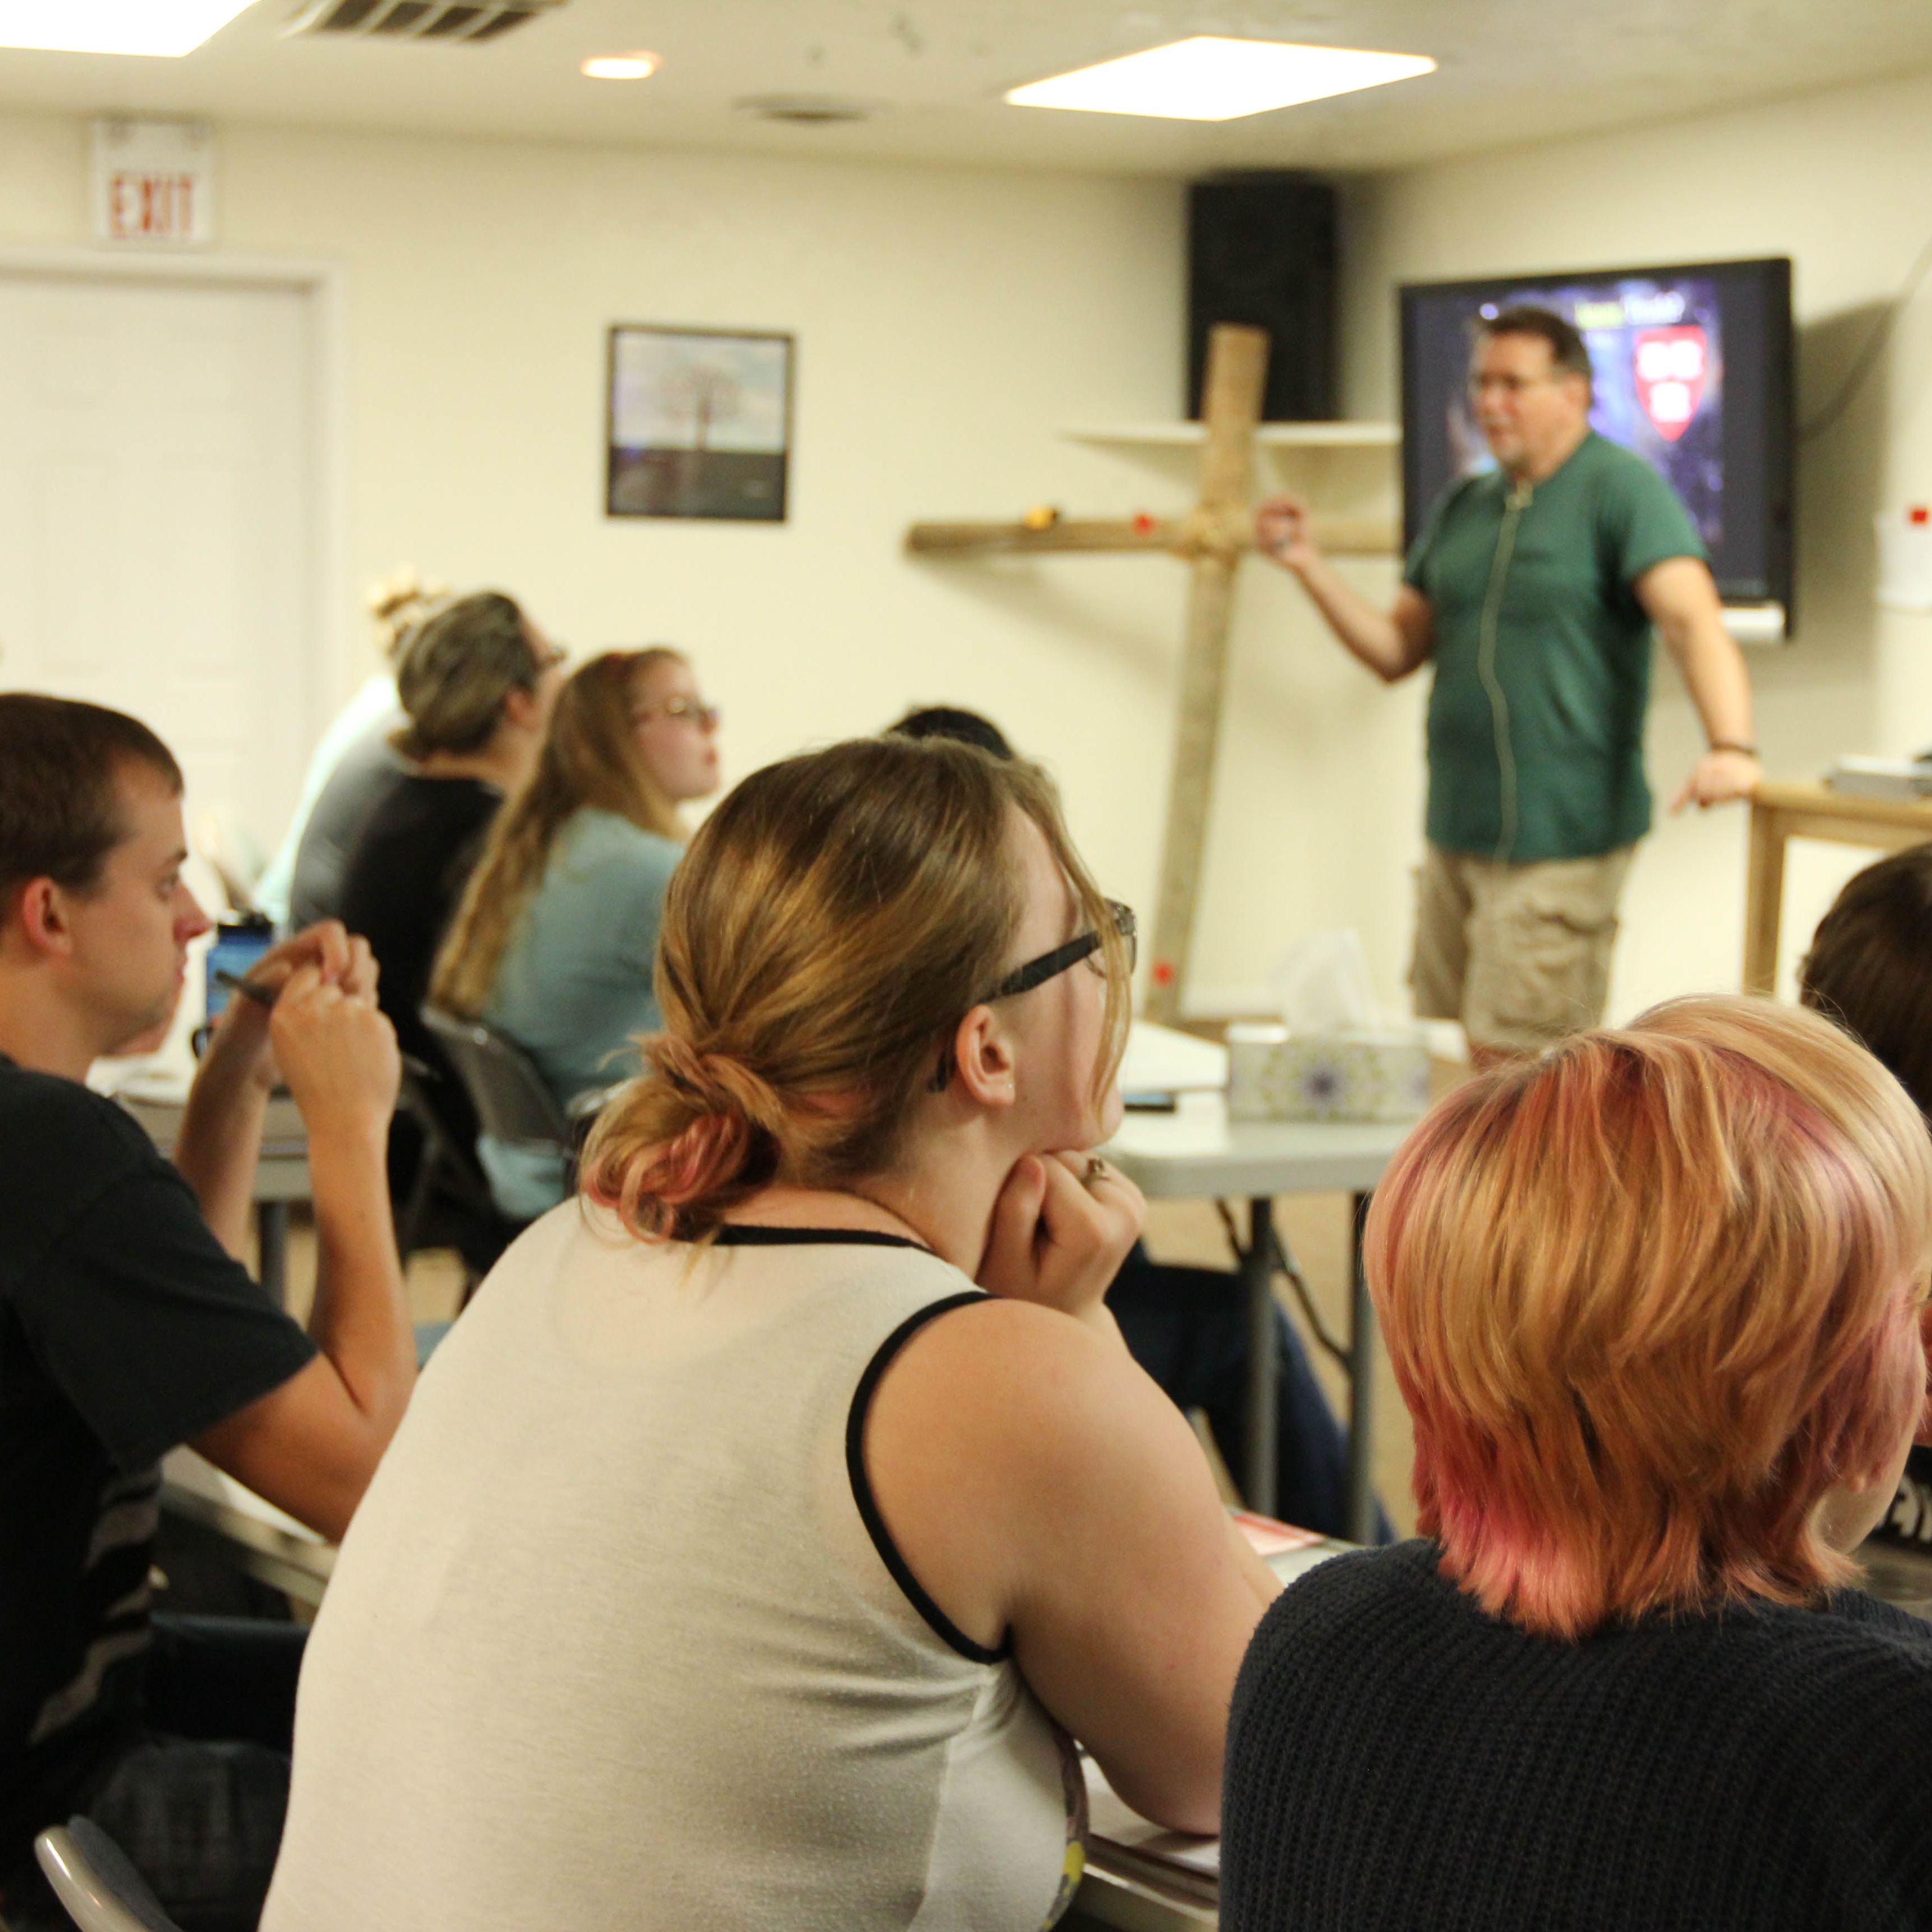 ywam-tyler-missionary-discipleship-training-school-classroom-don-stephens